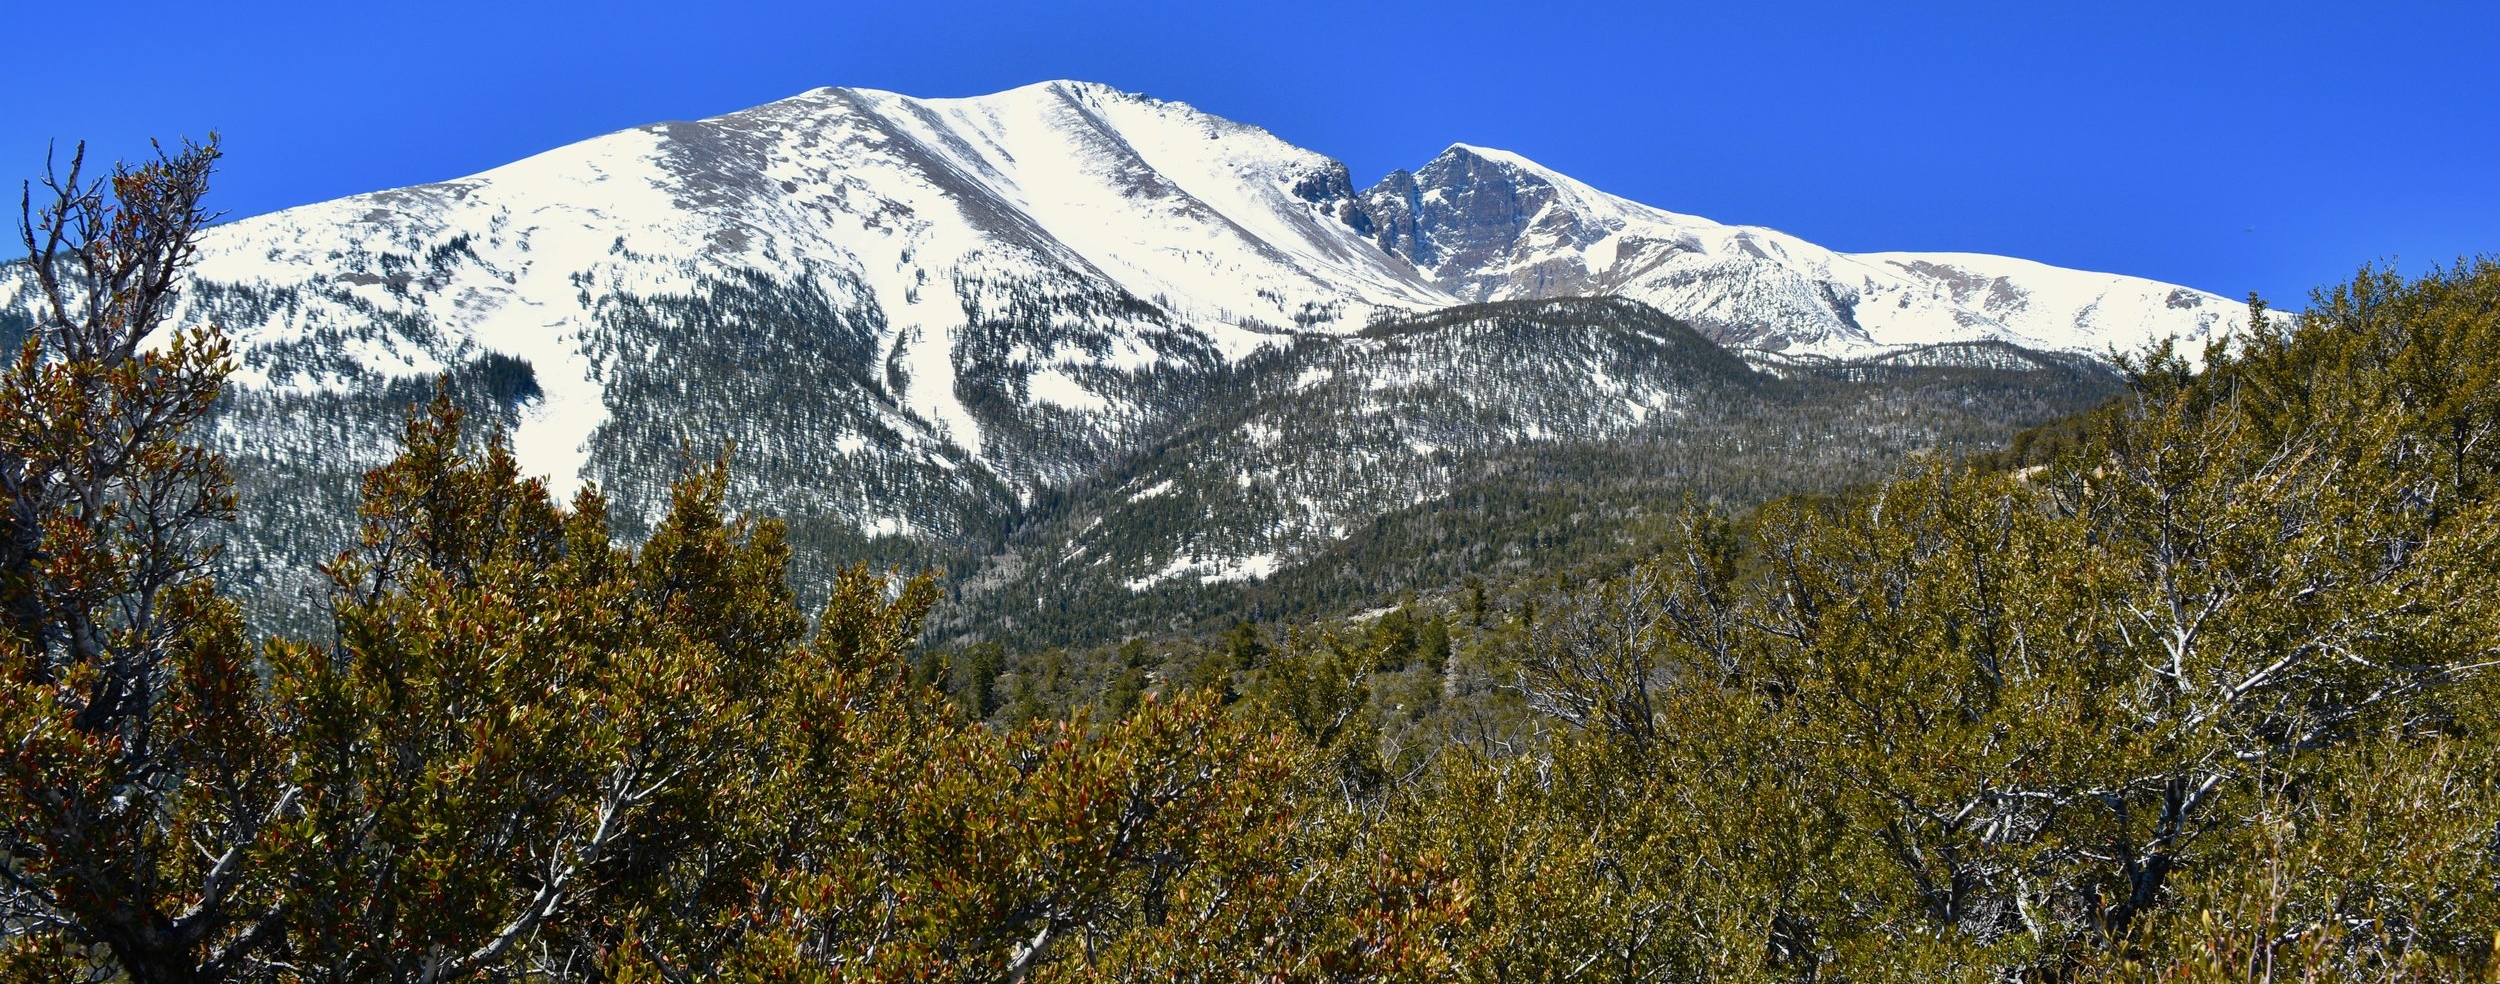 View from Mather Overlook at Great Basin National Park